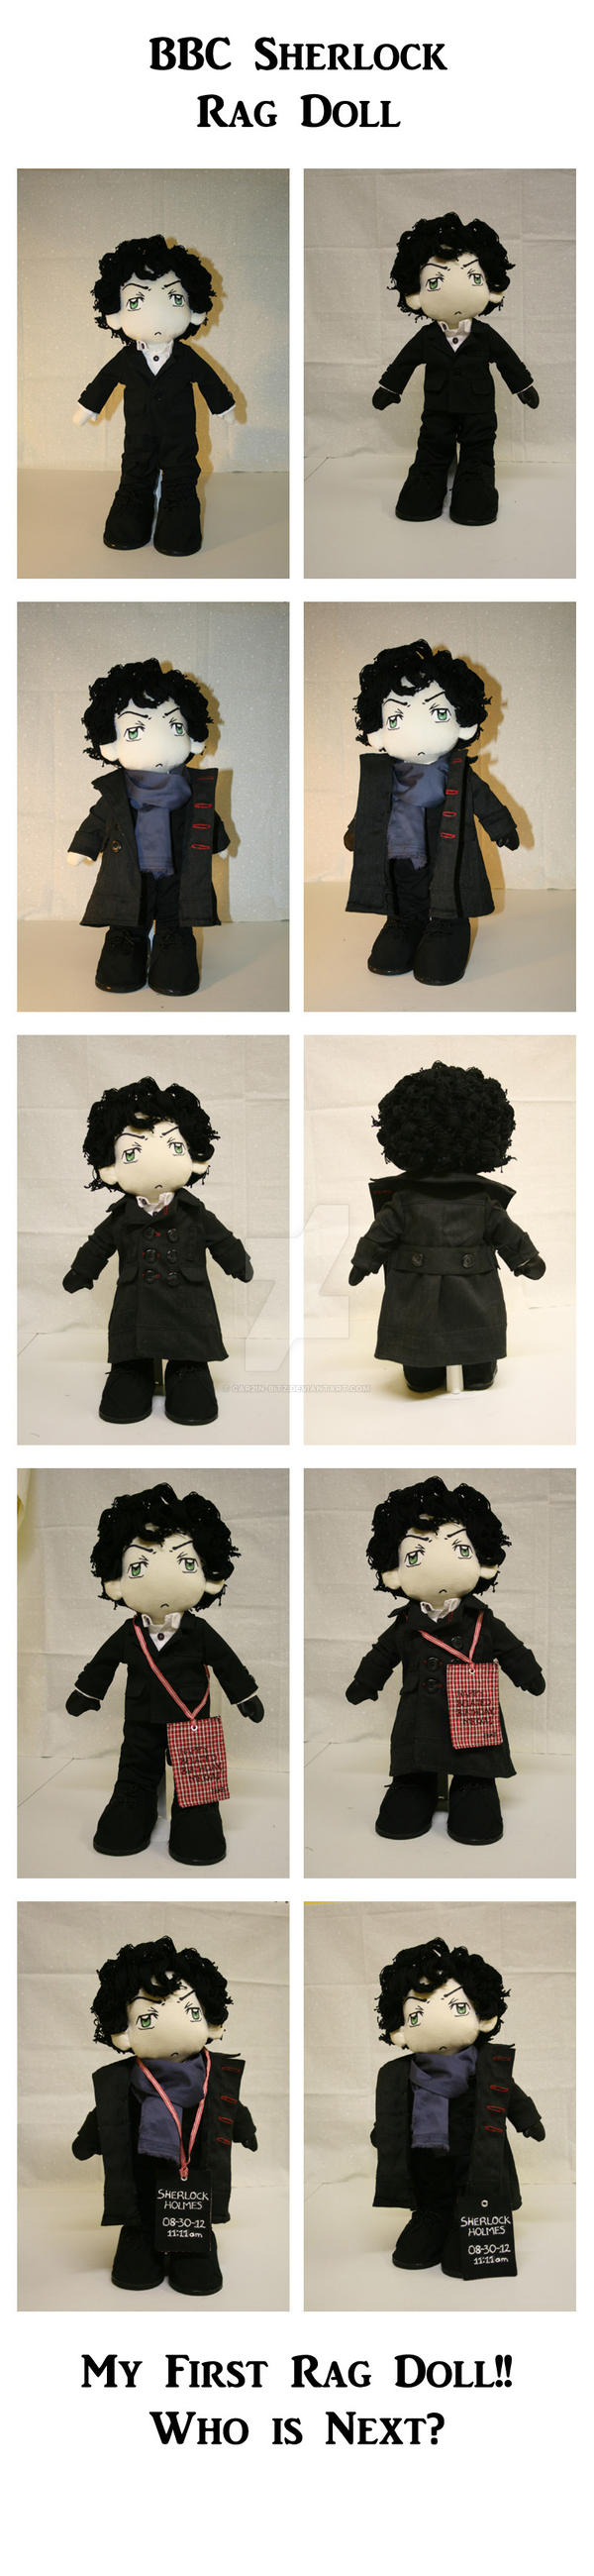 BBC Sherlock--Rag Doll by car2in-bitz